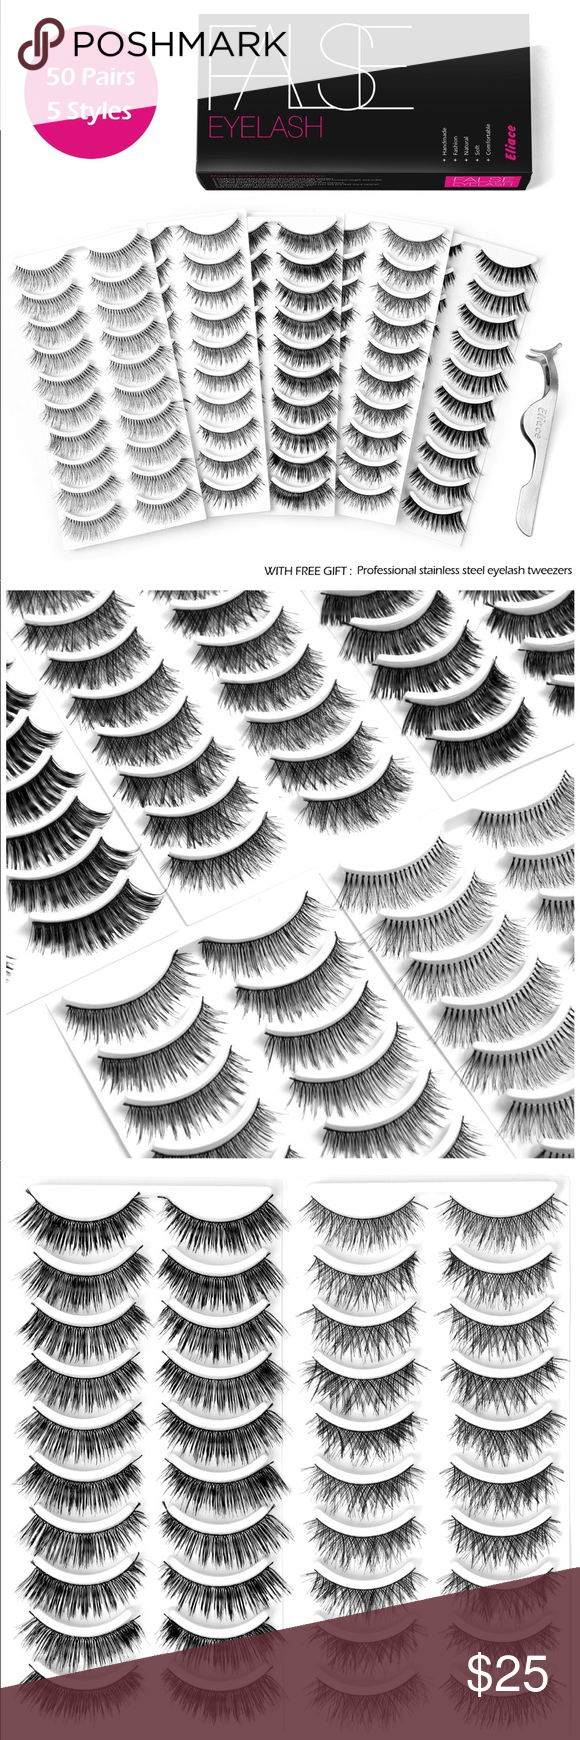 bb0b3c2a810 Eliace 95 individual lashes 5 Styles Lashes Eliace 95 5 Styles Lashes  Handmade False Eyelashes Set